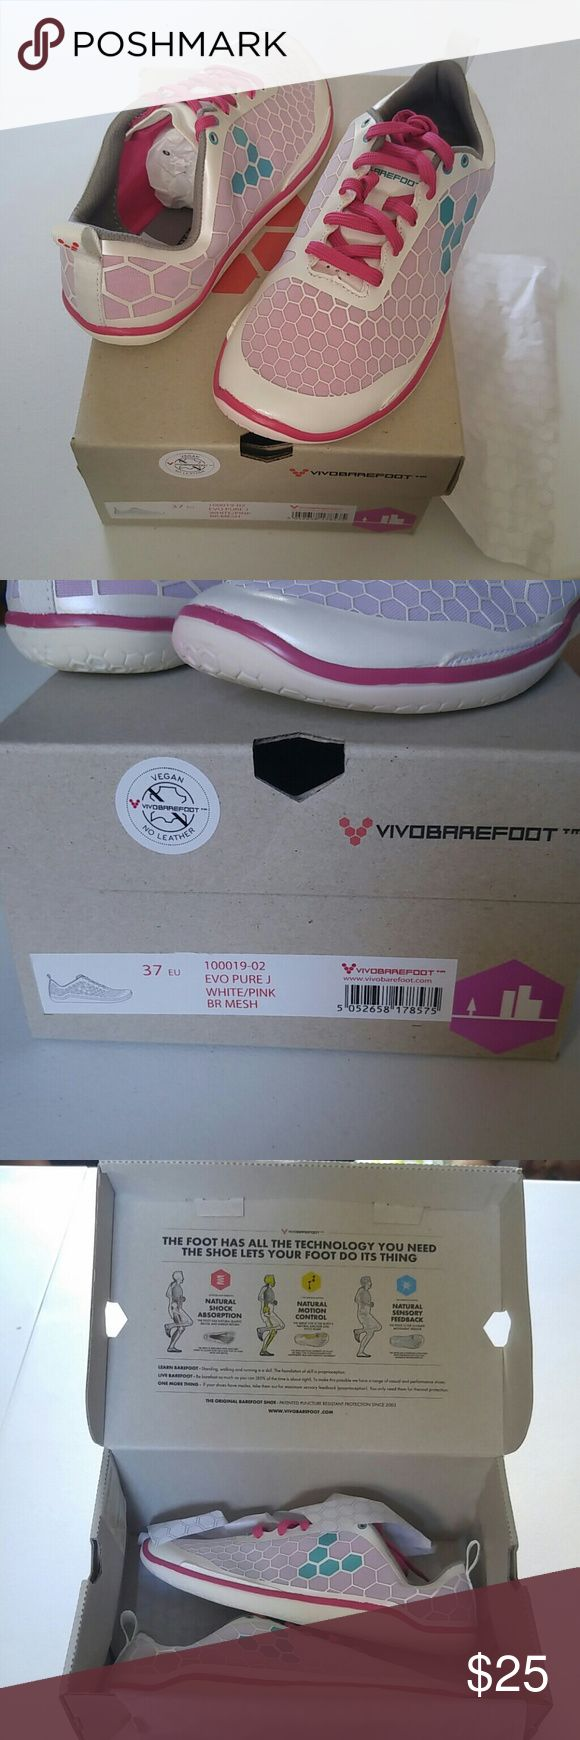 Vivobrrefoot brand  barefoot shoes new in box Girls New in box vivobarefoot shoes Vivo barefoot Shoes Sneakers